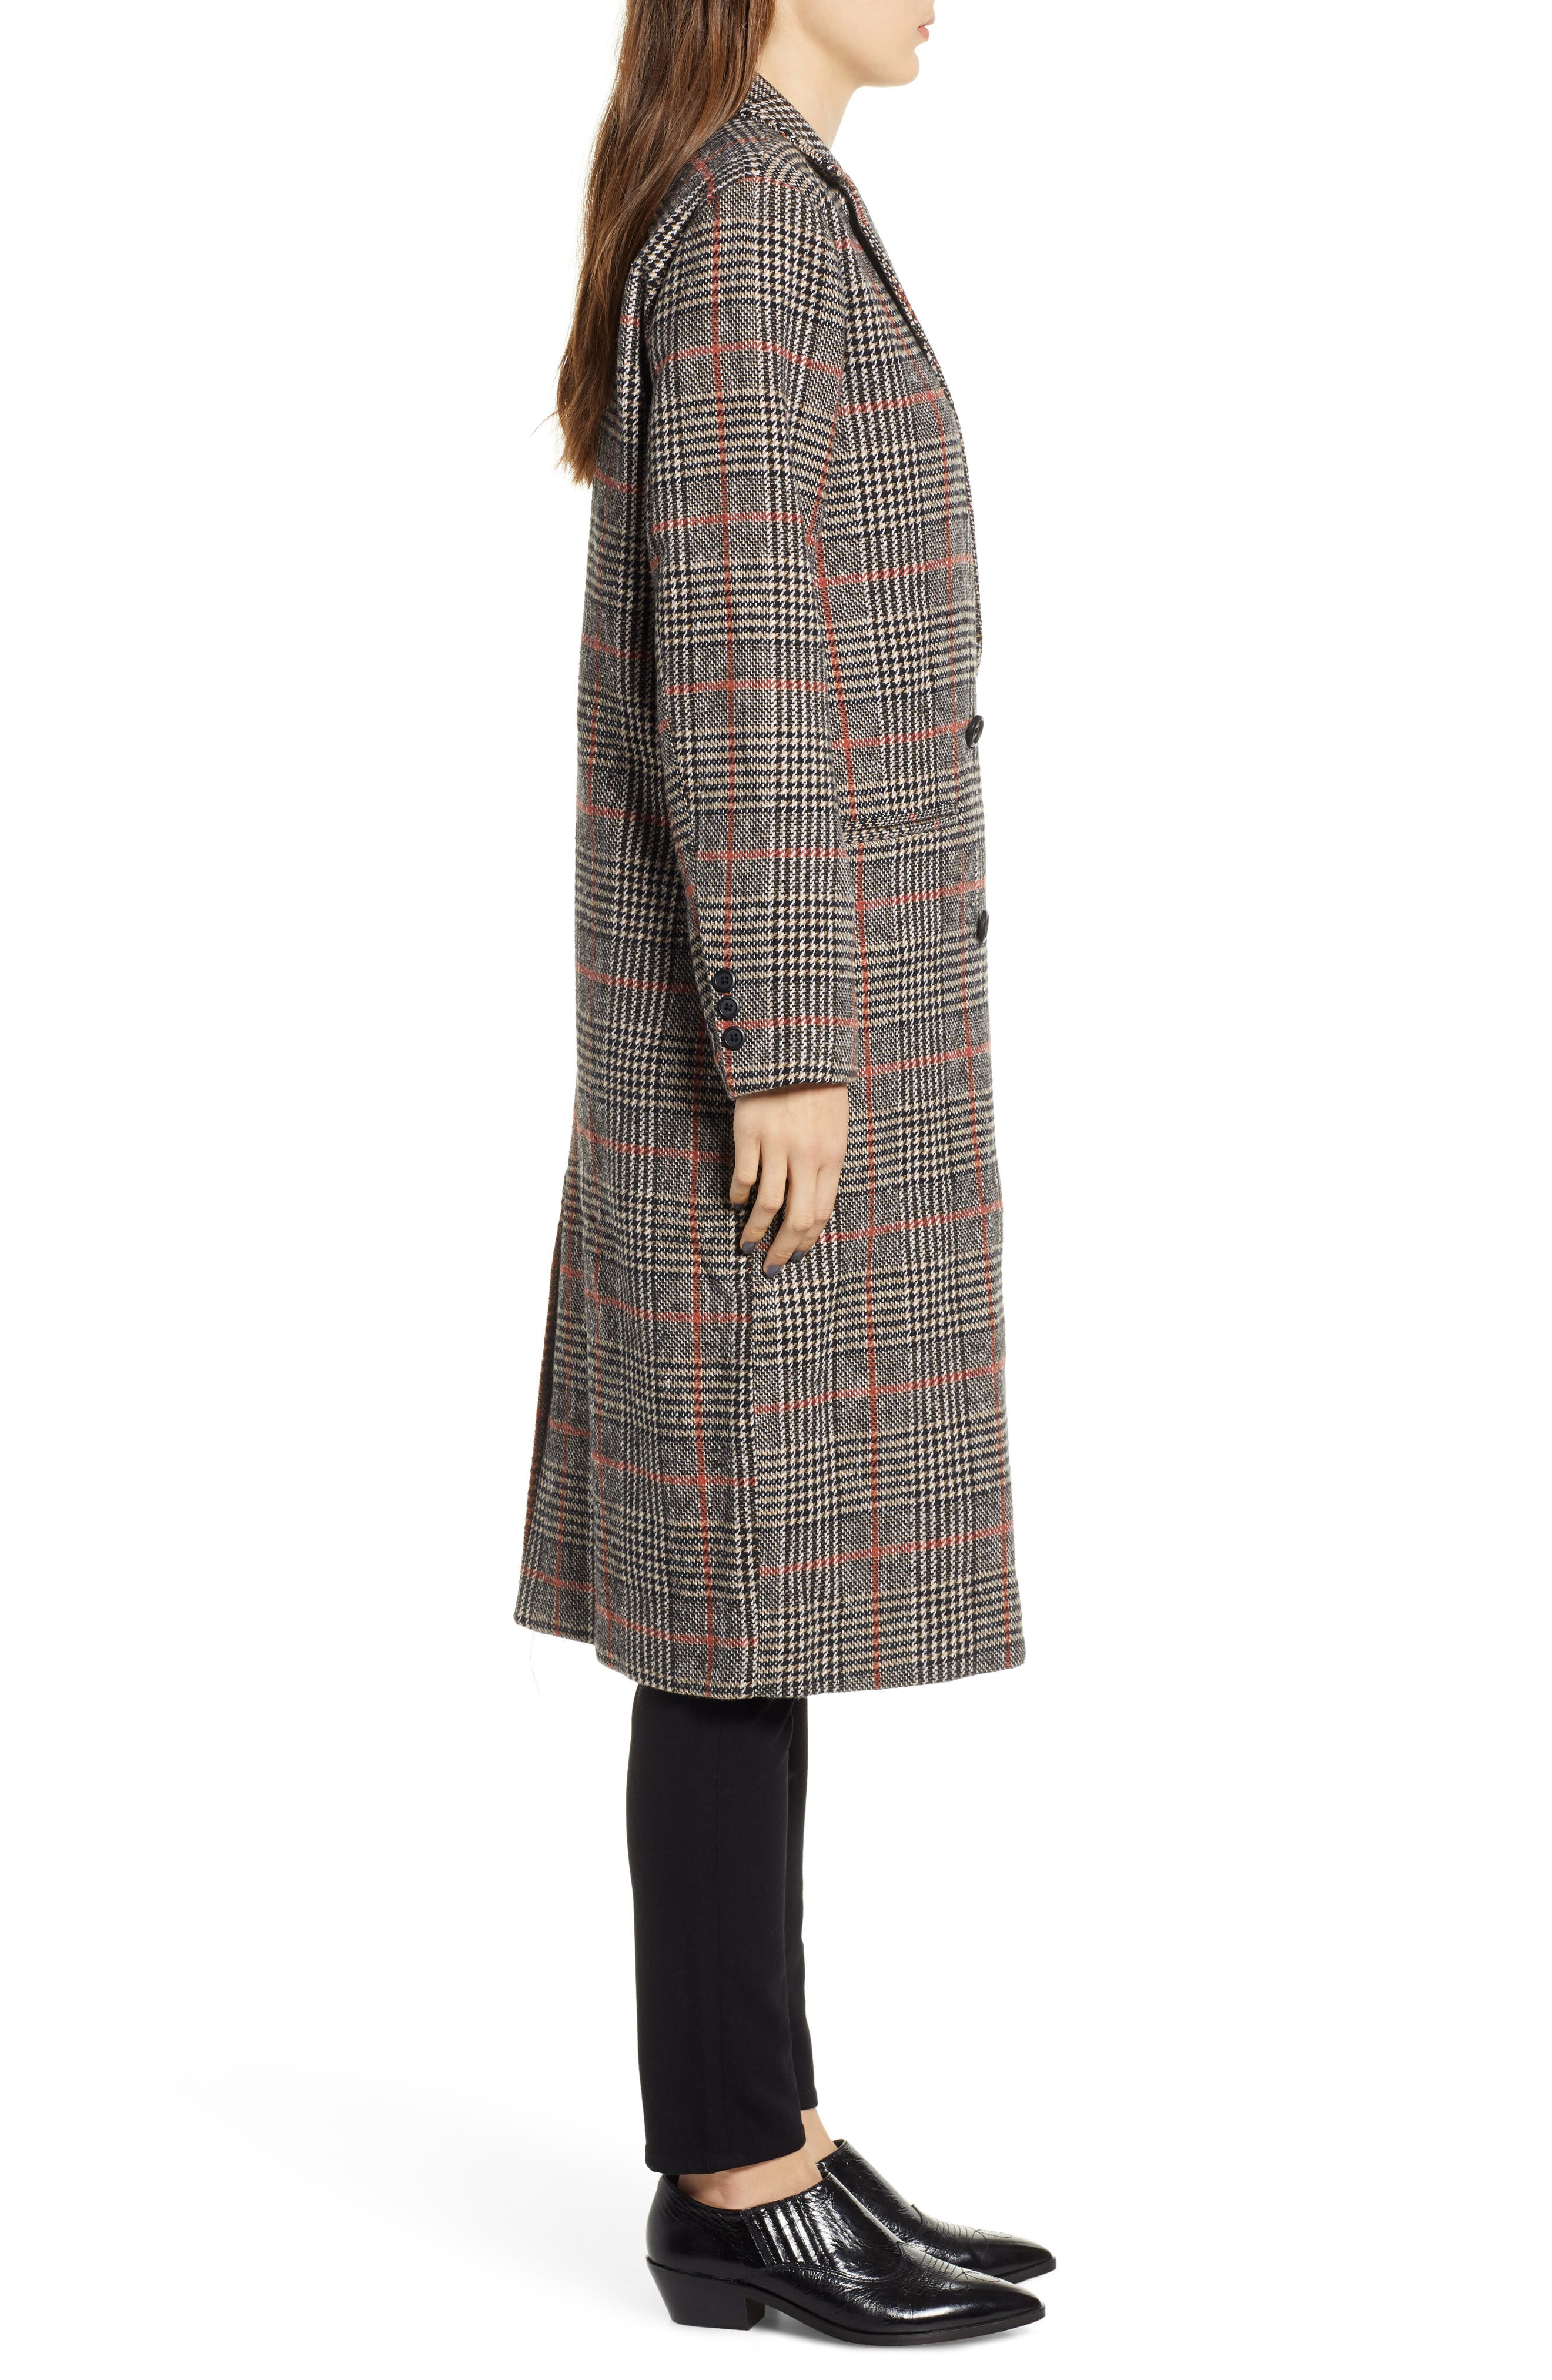 CUPCAKES AND CASHMERE,                             Plaid Duster Jacket,                             Alternate thumbnail 3, color,                             020